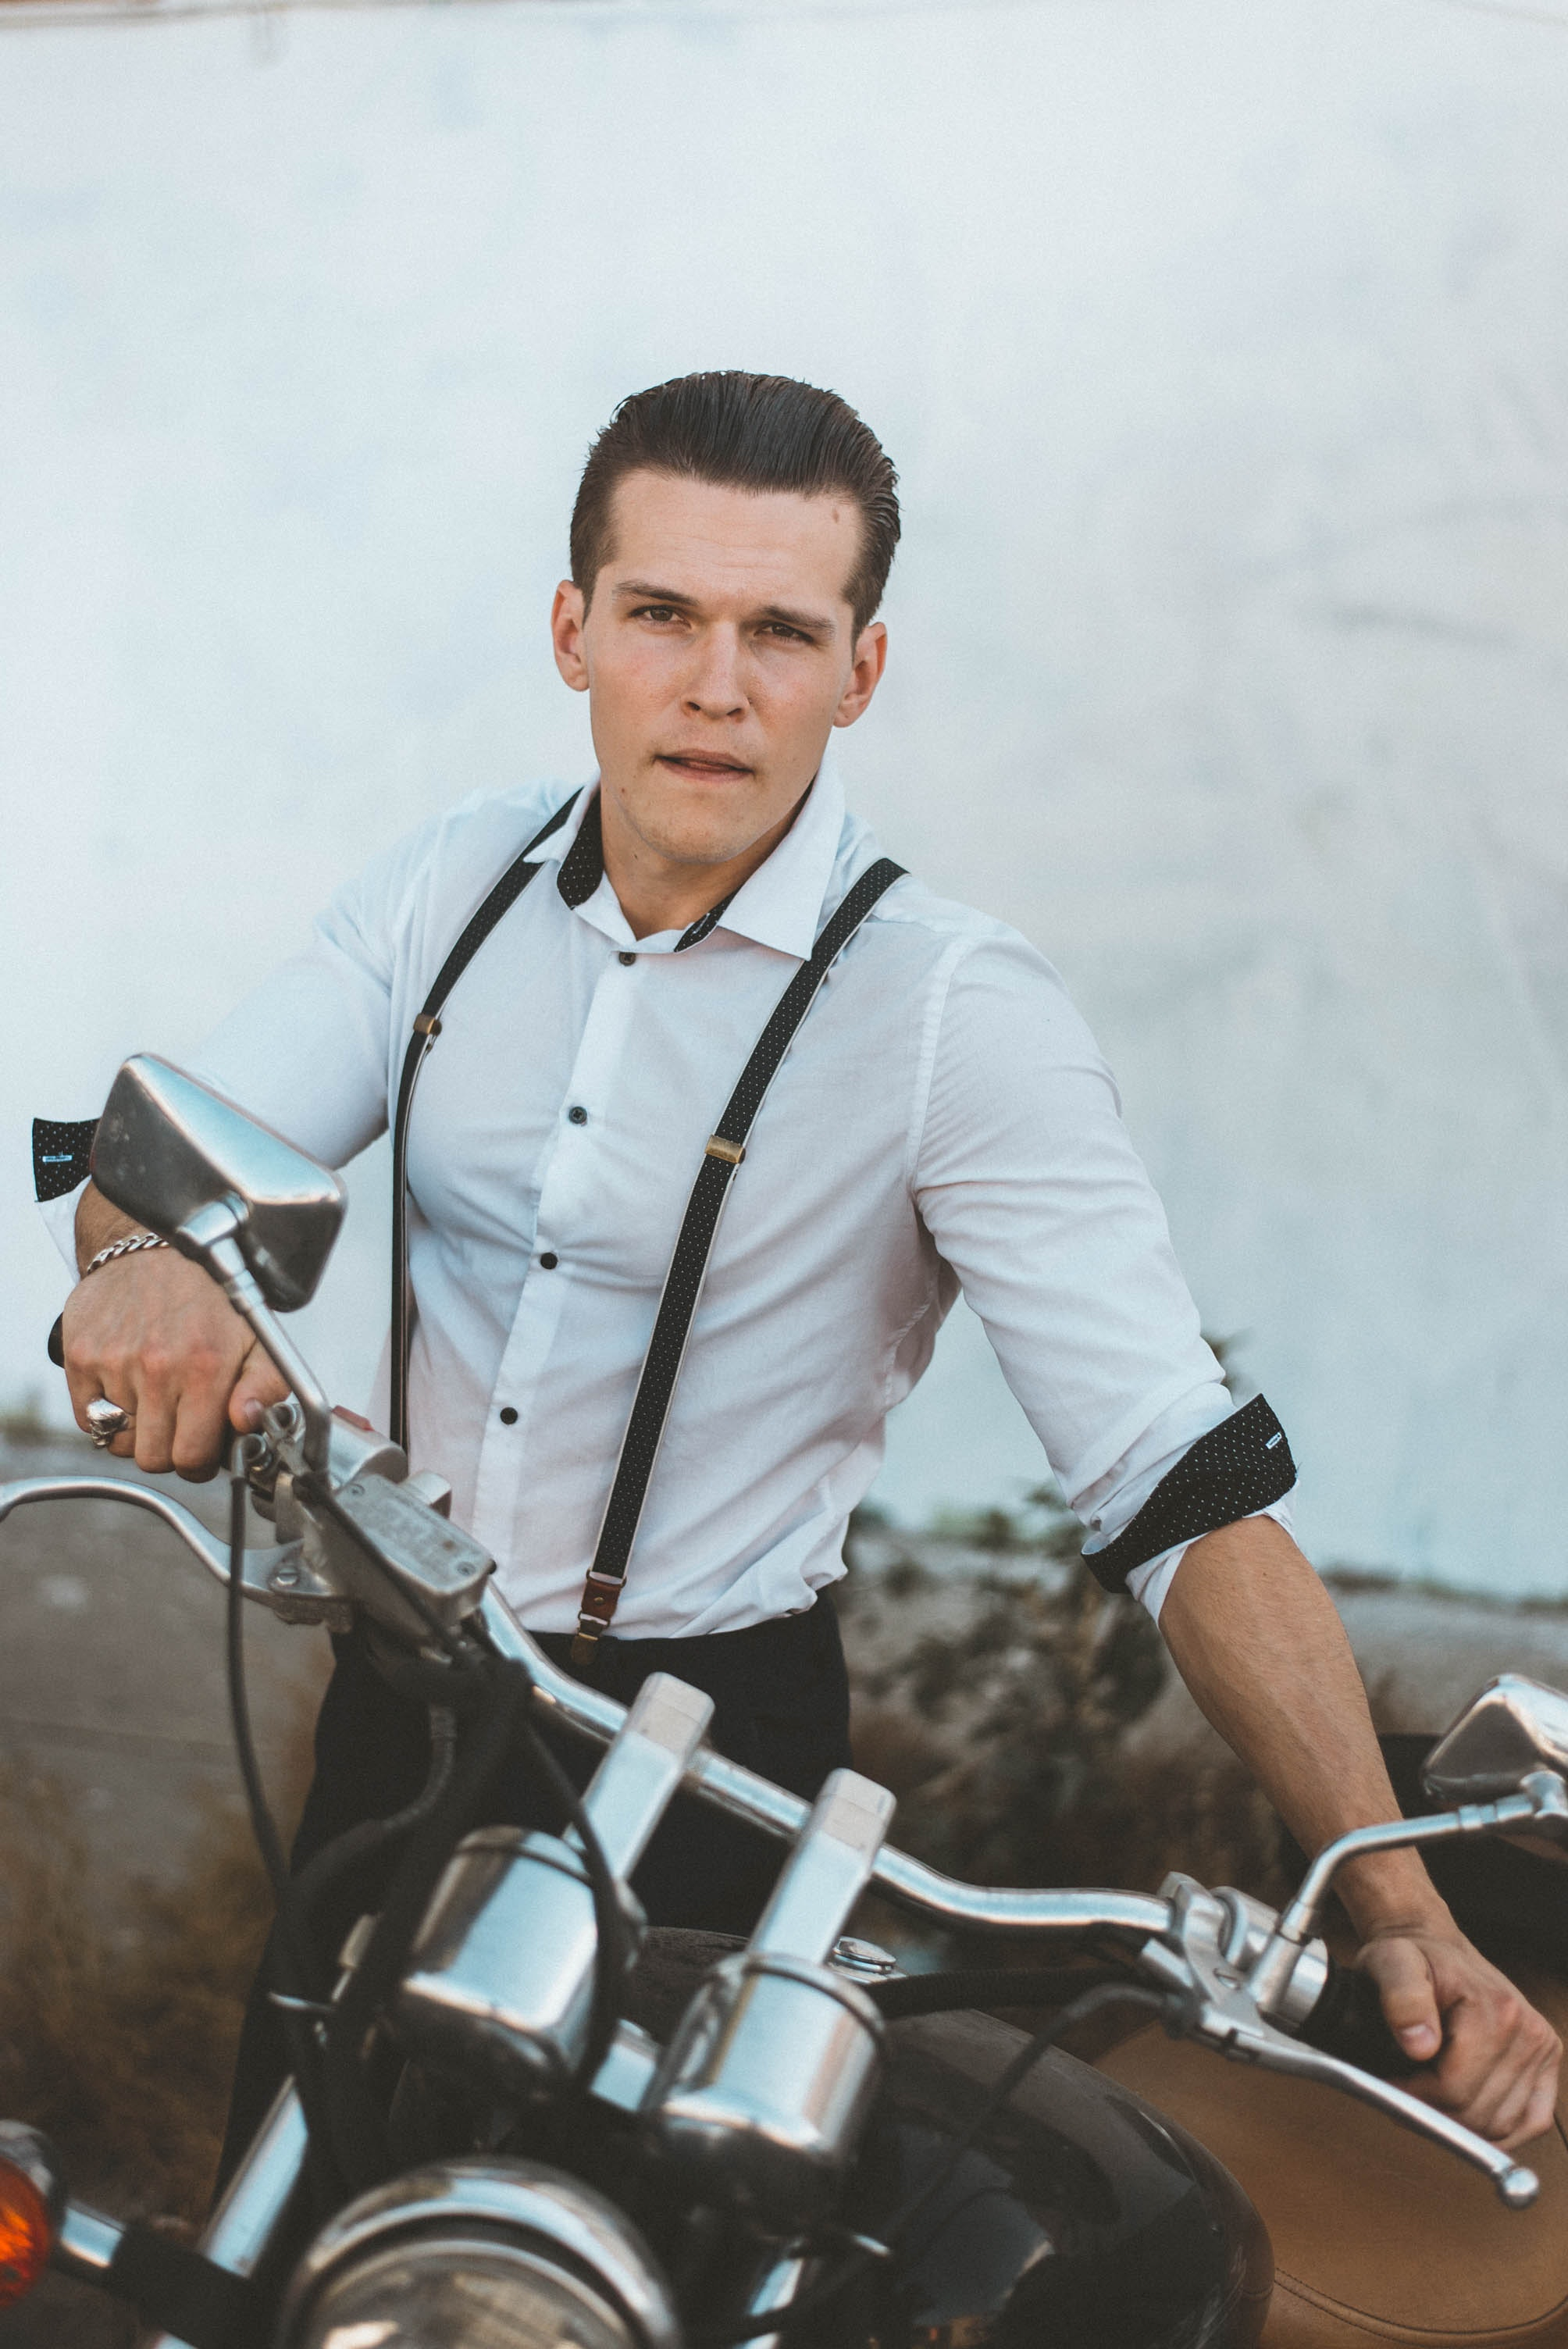 Man in white dress shirt with suspenders holding black motorcycle photo